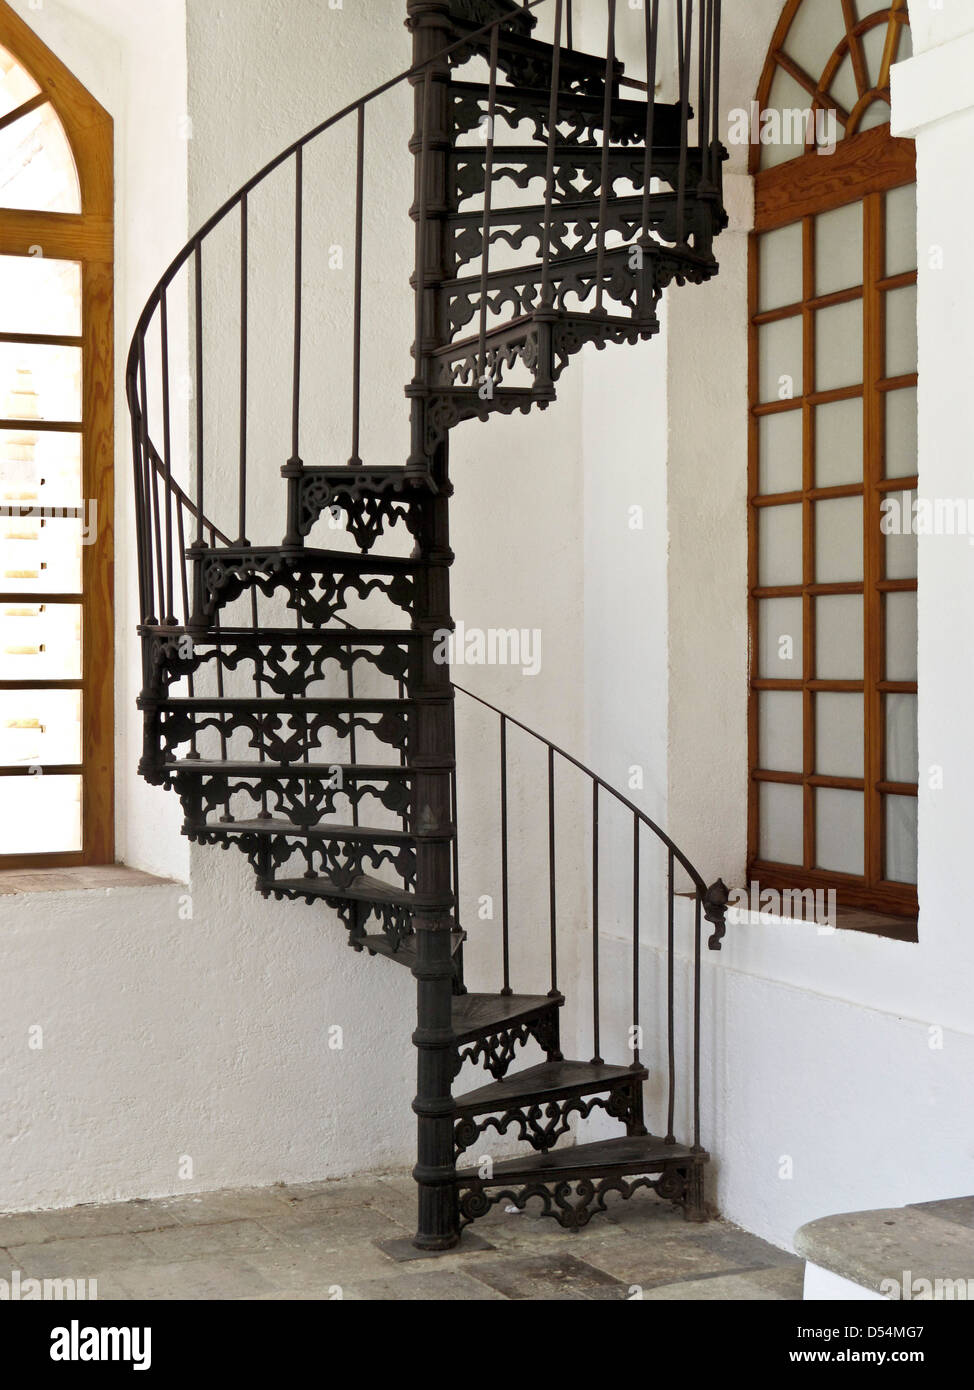 Cheap Decorative Th Century Cast Iron Spiral Stair Between Levels At  Textile Mill Converted To Center For The Arts San Agustin Etla With Spiral  Staircase.